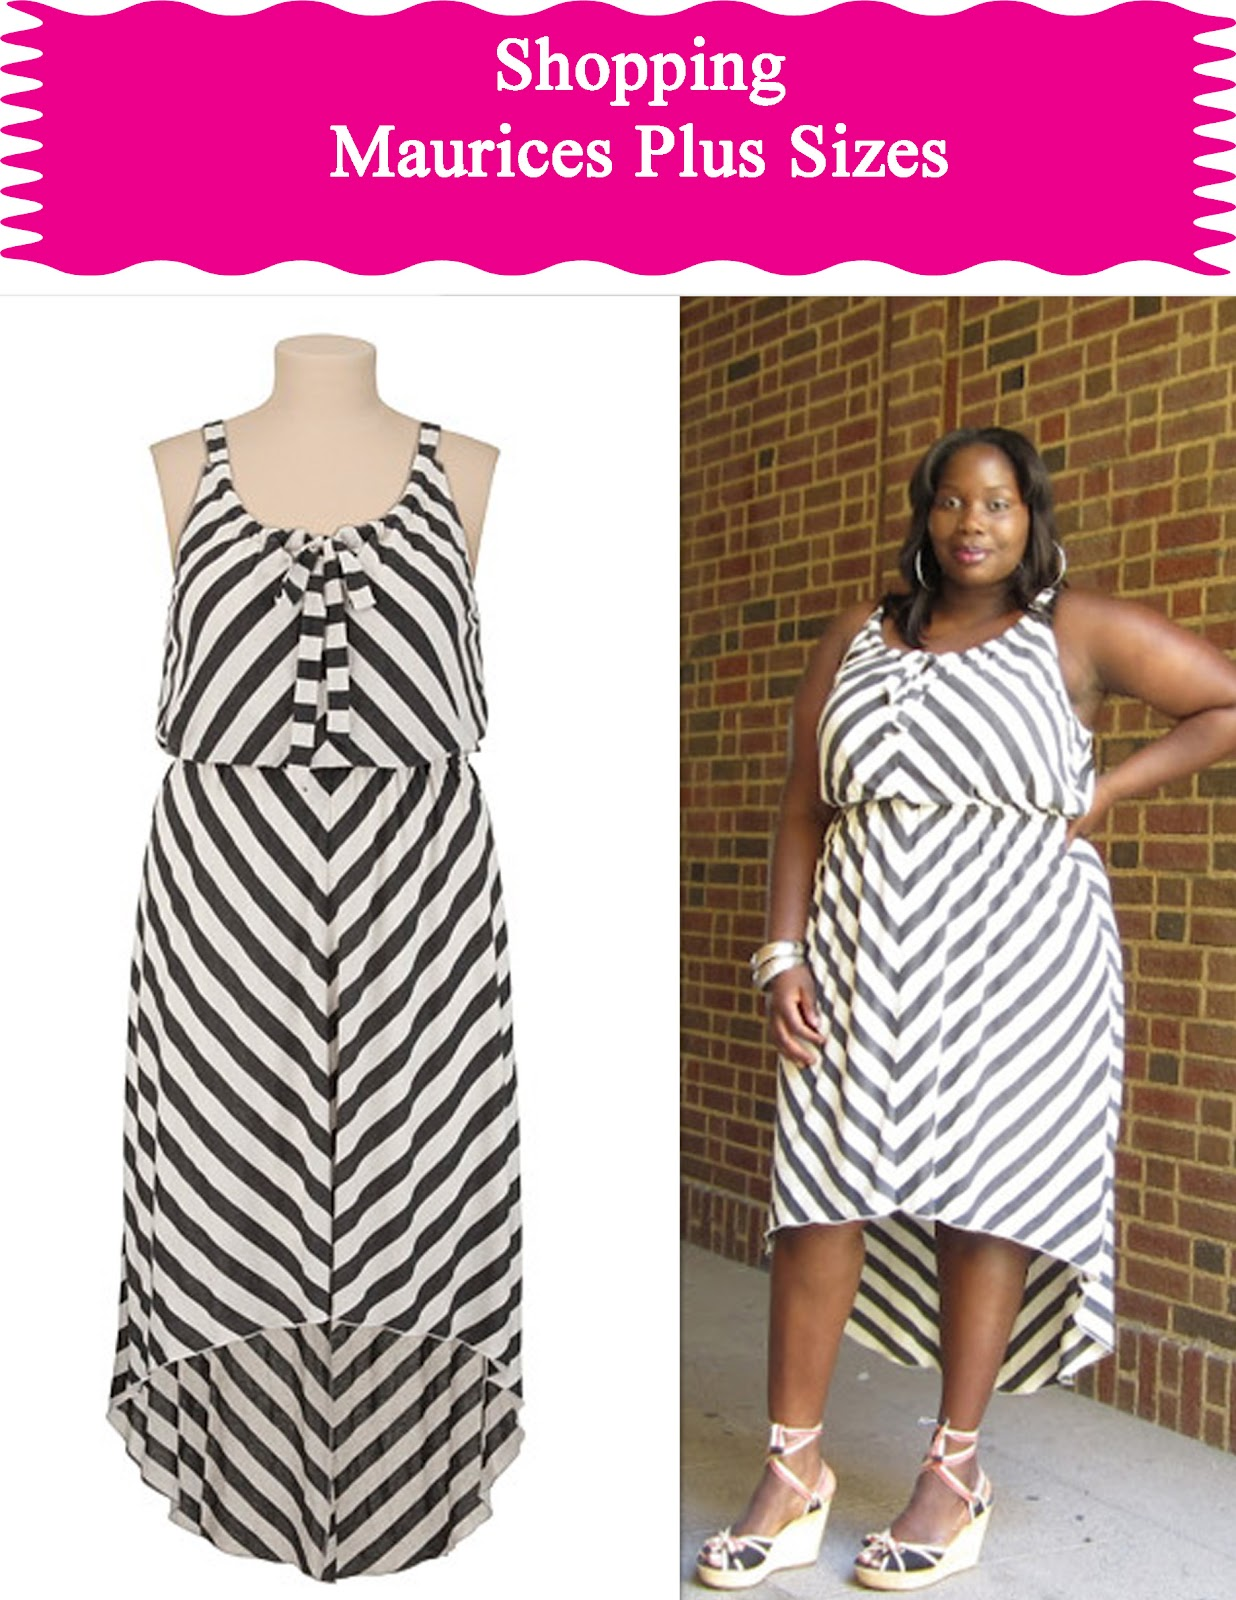 SHOPPING MAURICES | Stylish Curves